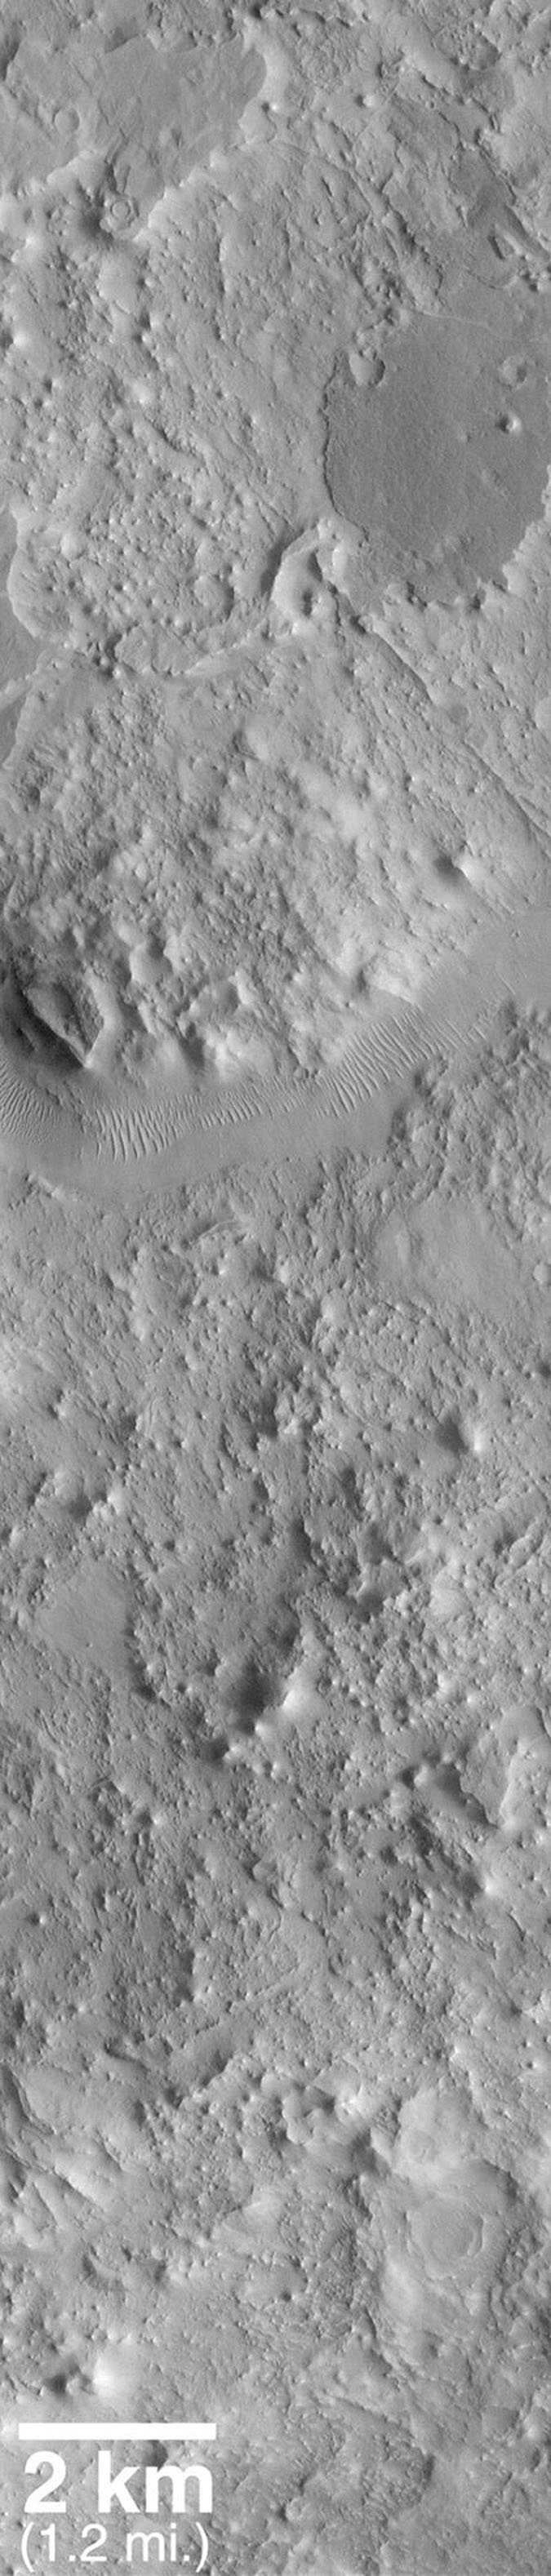 NASA's Mars Global Surveyor shows a portion of the ancient Auqakuh Vallis and many eroded remnants of the ancient cratered terrain.